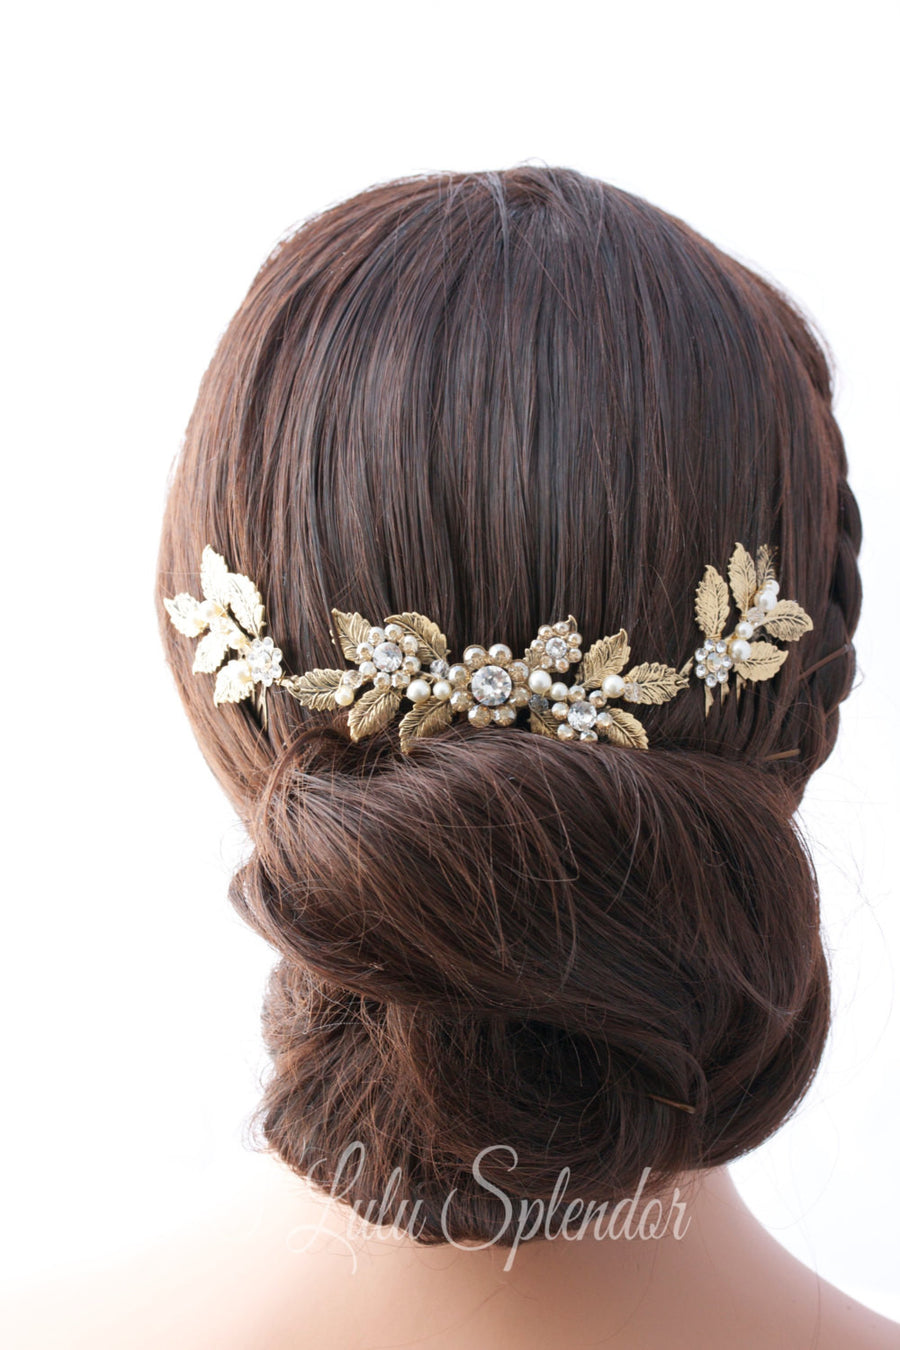 Stacey Gold Wedding Headpiece